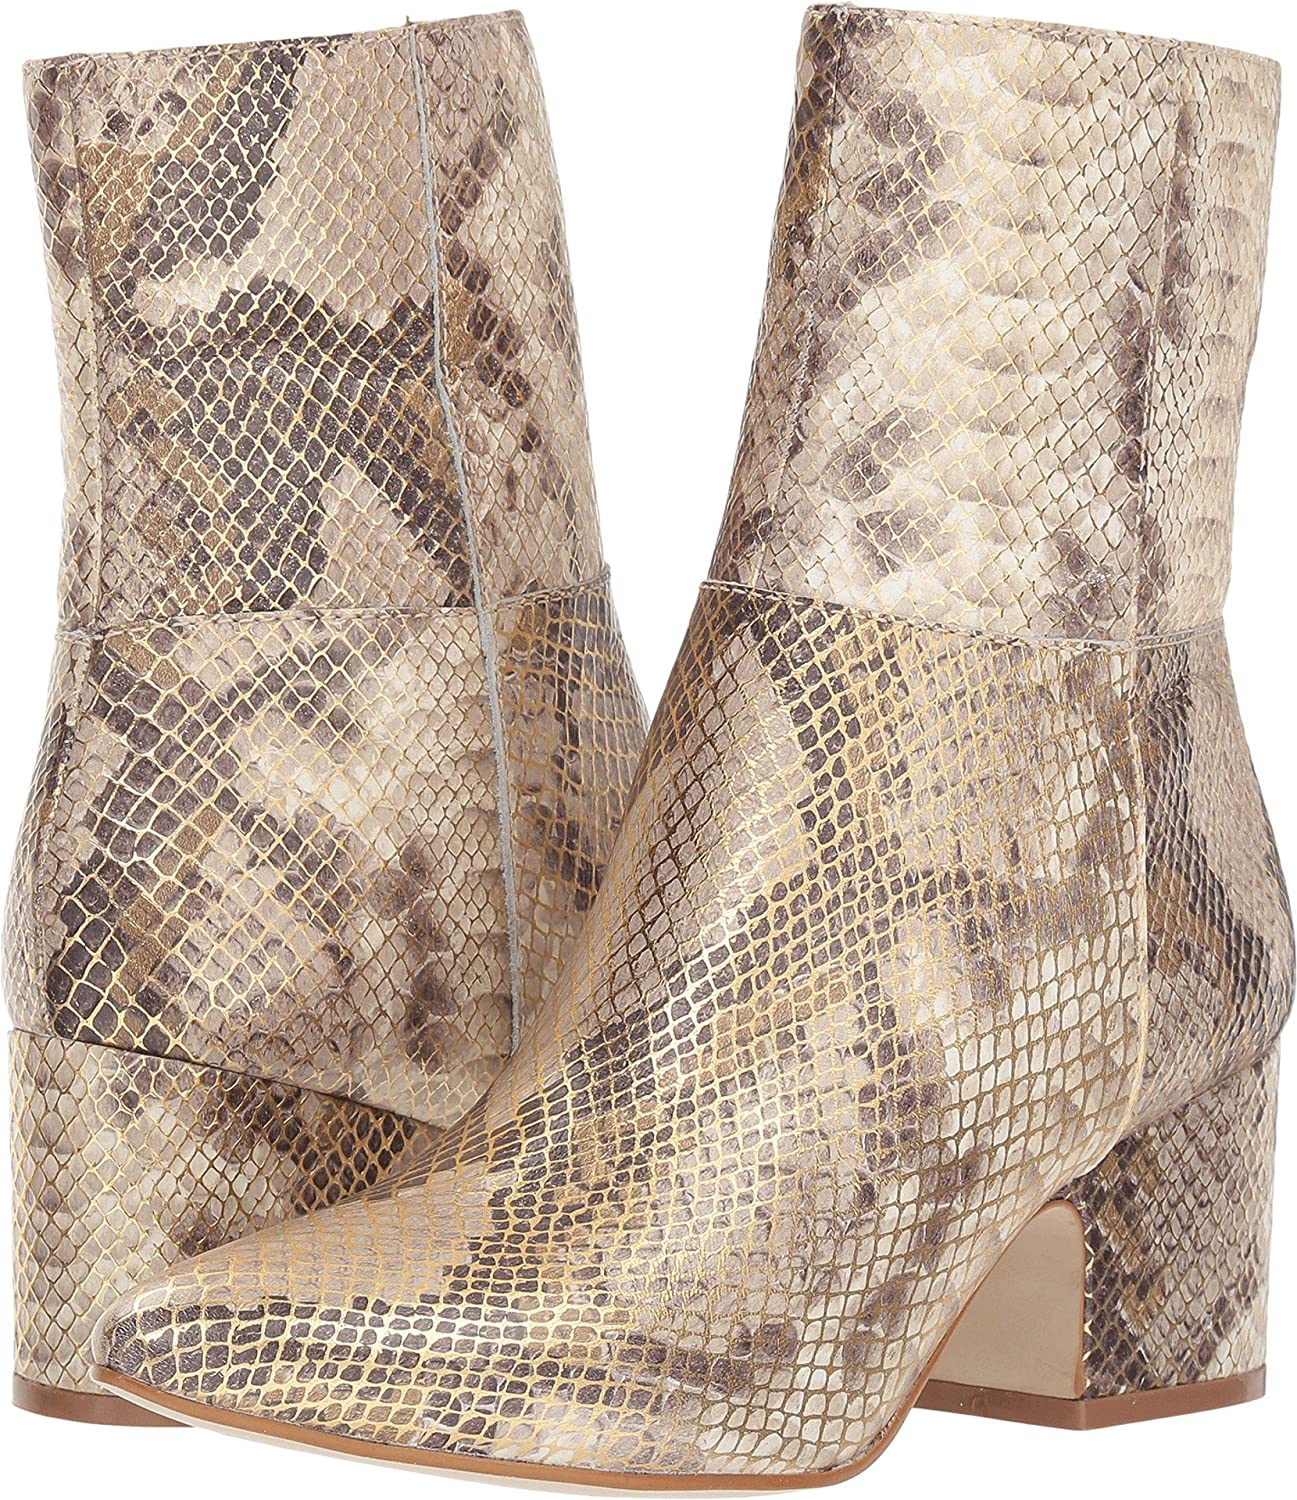 Matisse Women's at Ease Ankle Boot B07CYZ21J6 6.5 M US|Metallic Snake Leather